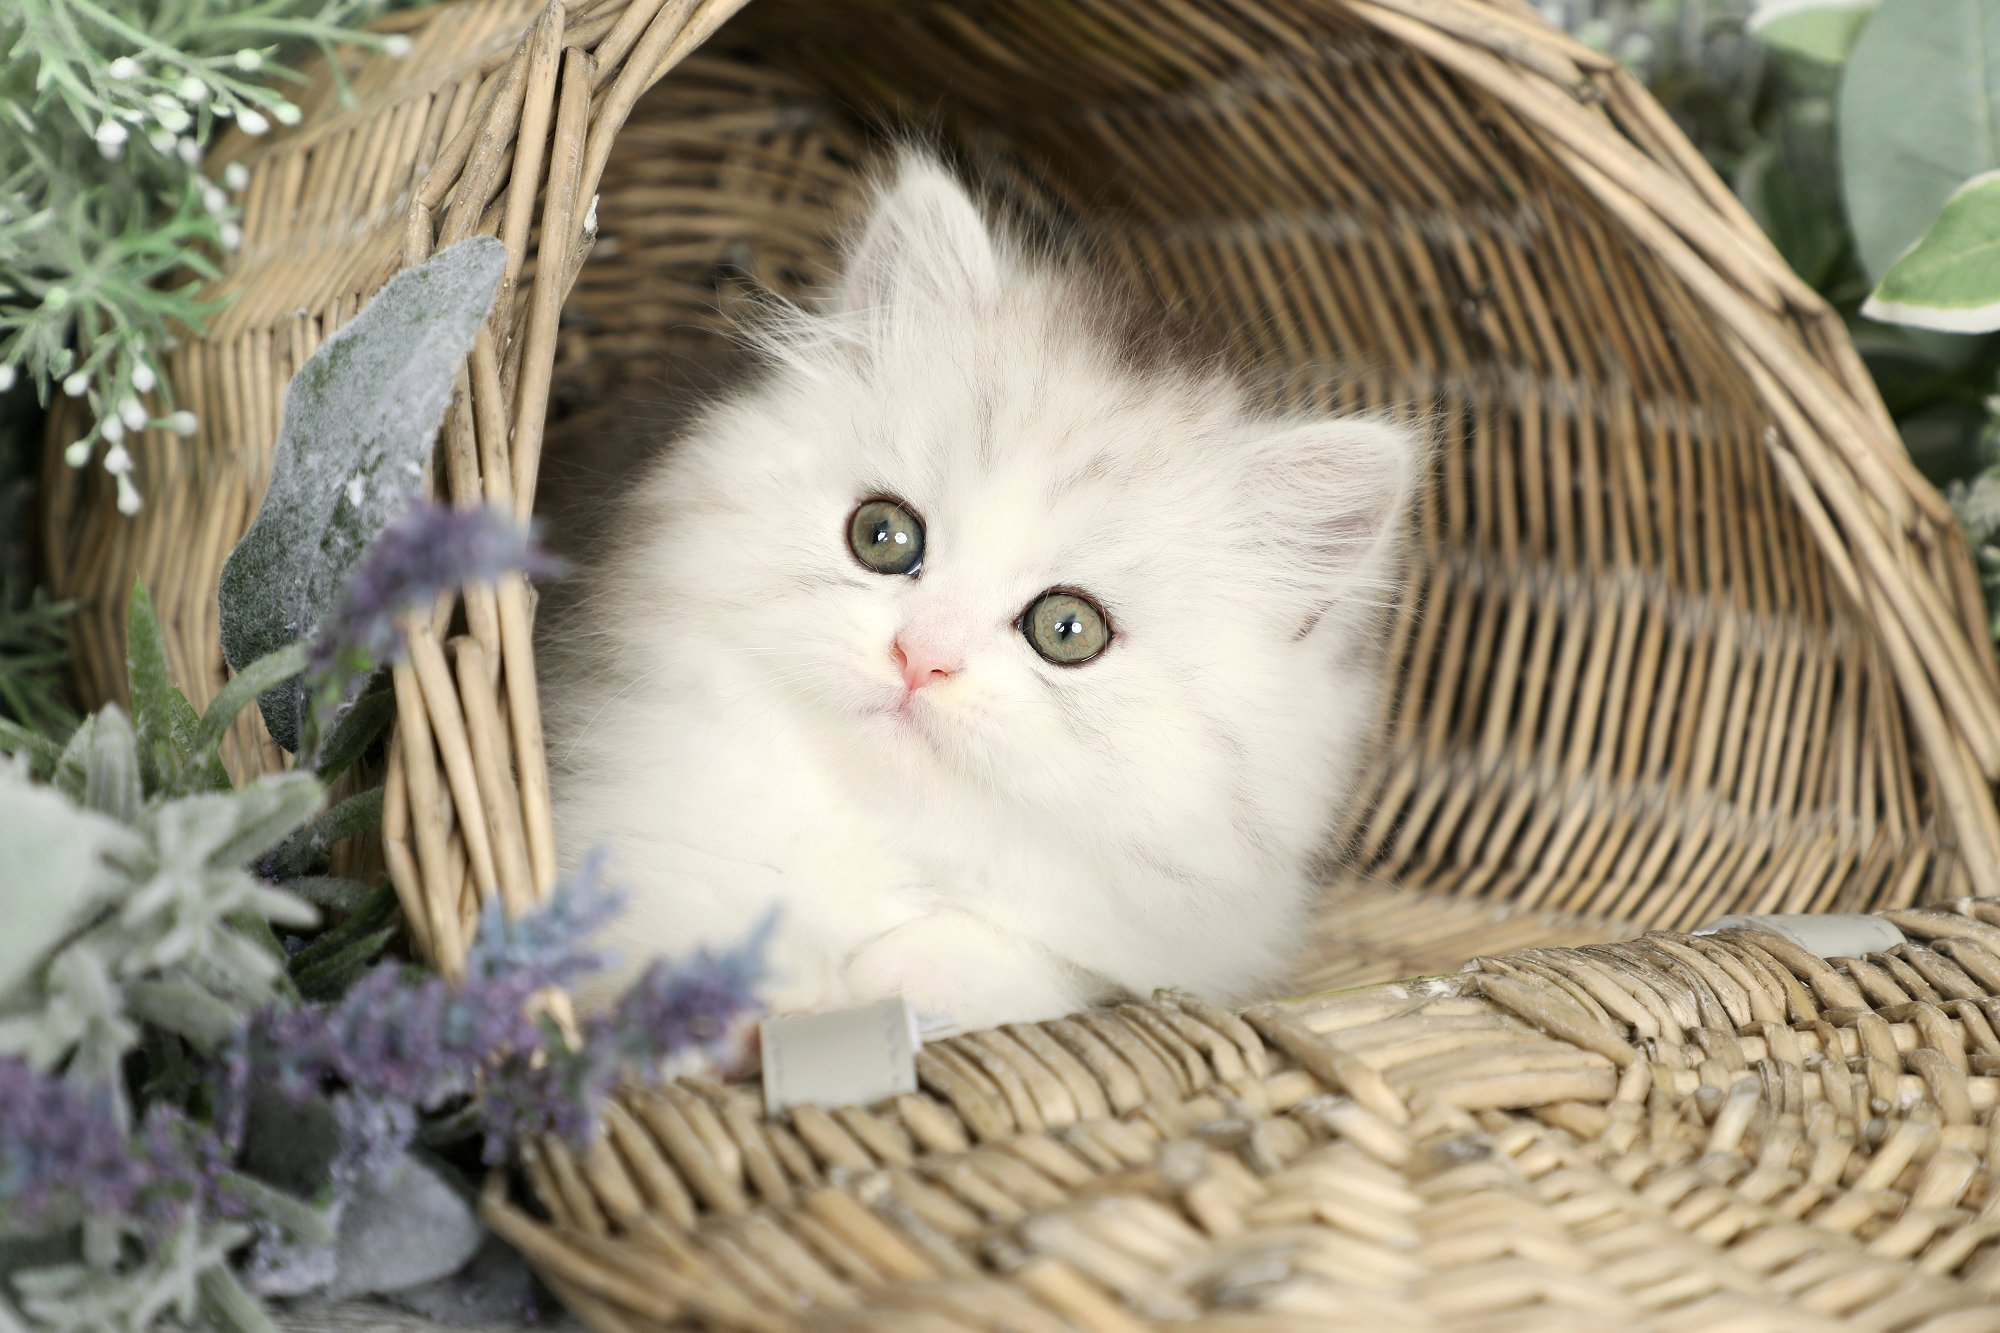 Silver & White Persian Kitten